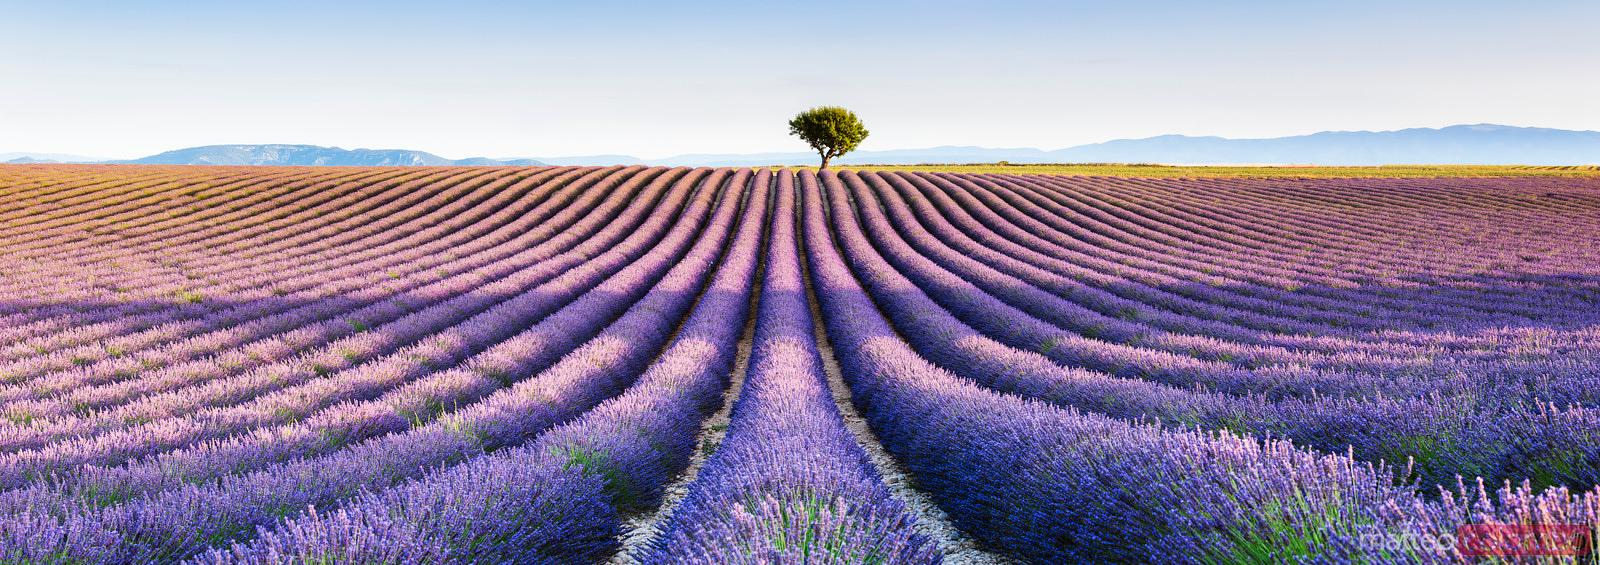 Panoramic of lavender field and tree, Provence, France